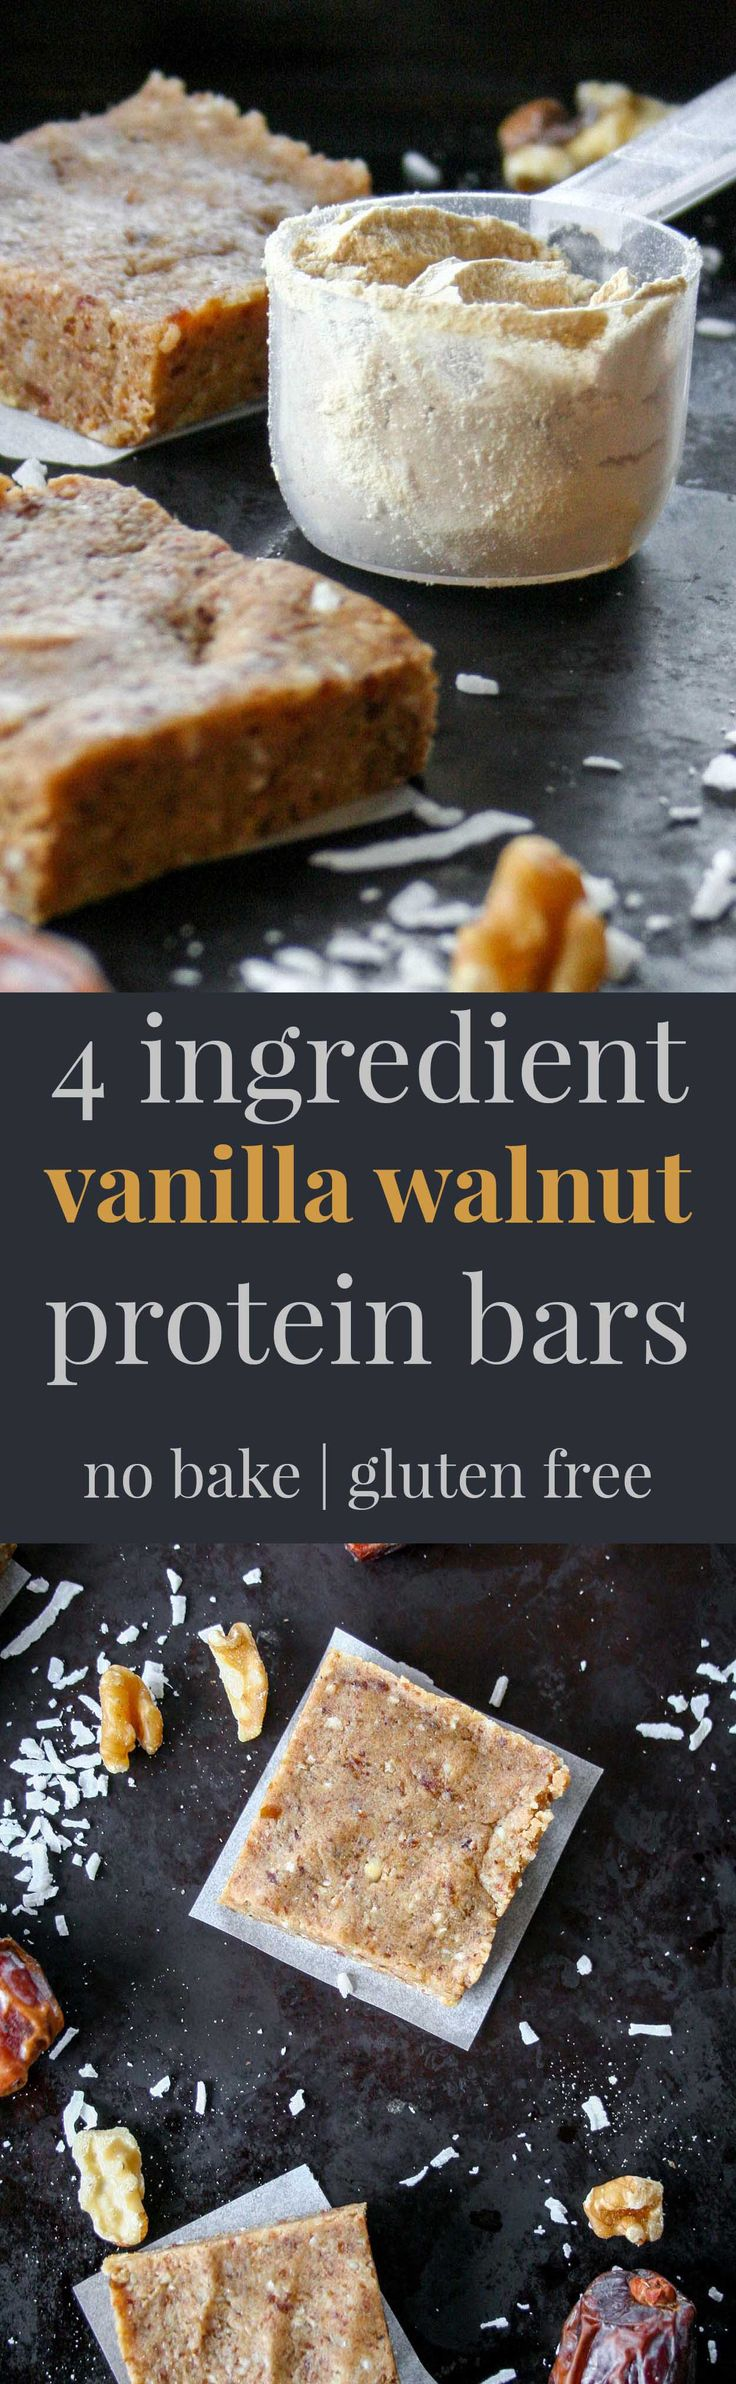 4-ingredient vanilla walnut protein bars are the perfect pre-workout snack to give you a boost of energy without filling you up or weighing you down. | protein, protein bar, healthy, easy, homemade, energy bite, energy ball | hungrybynature.com